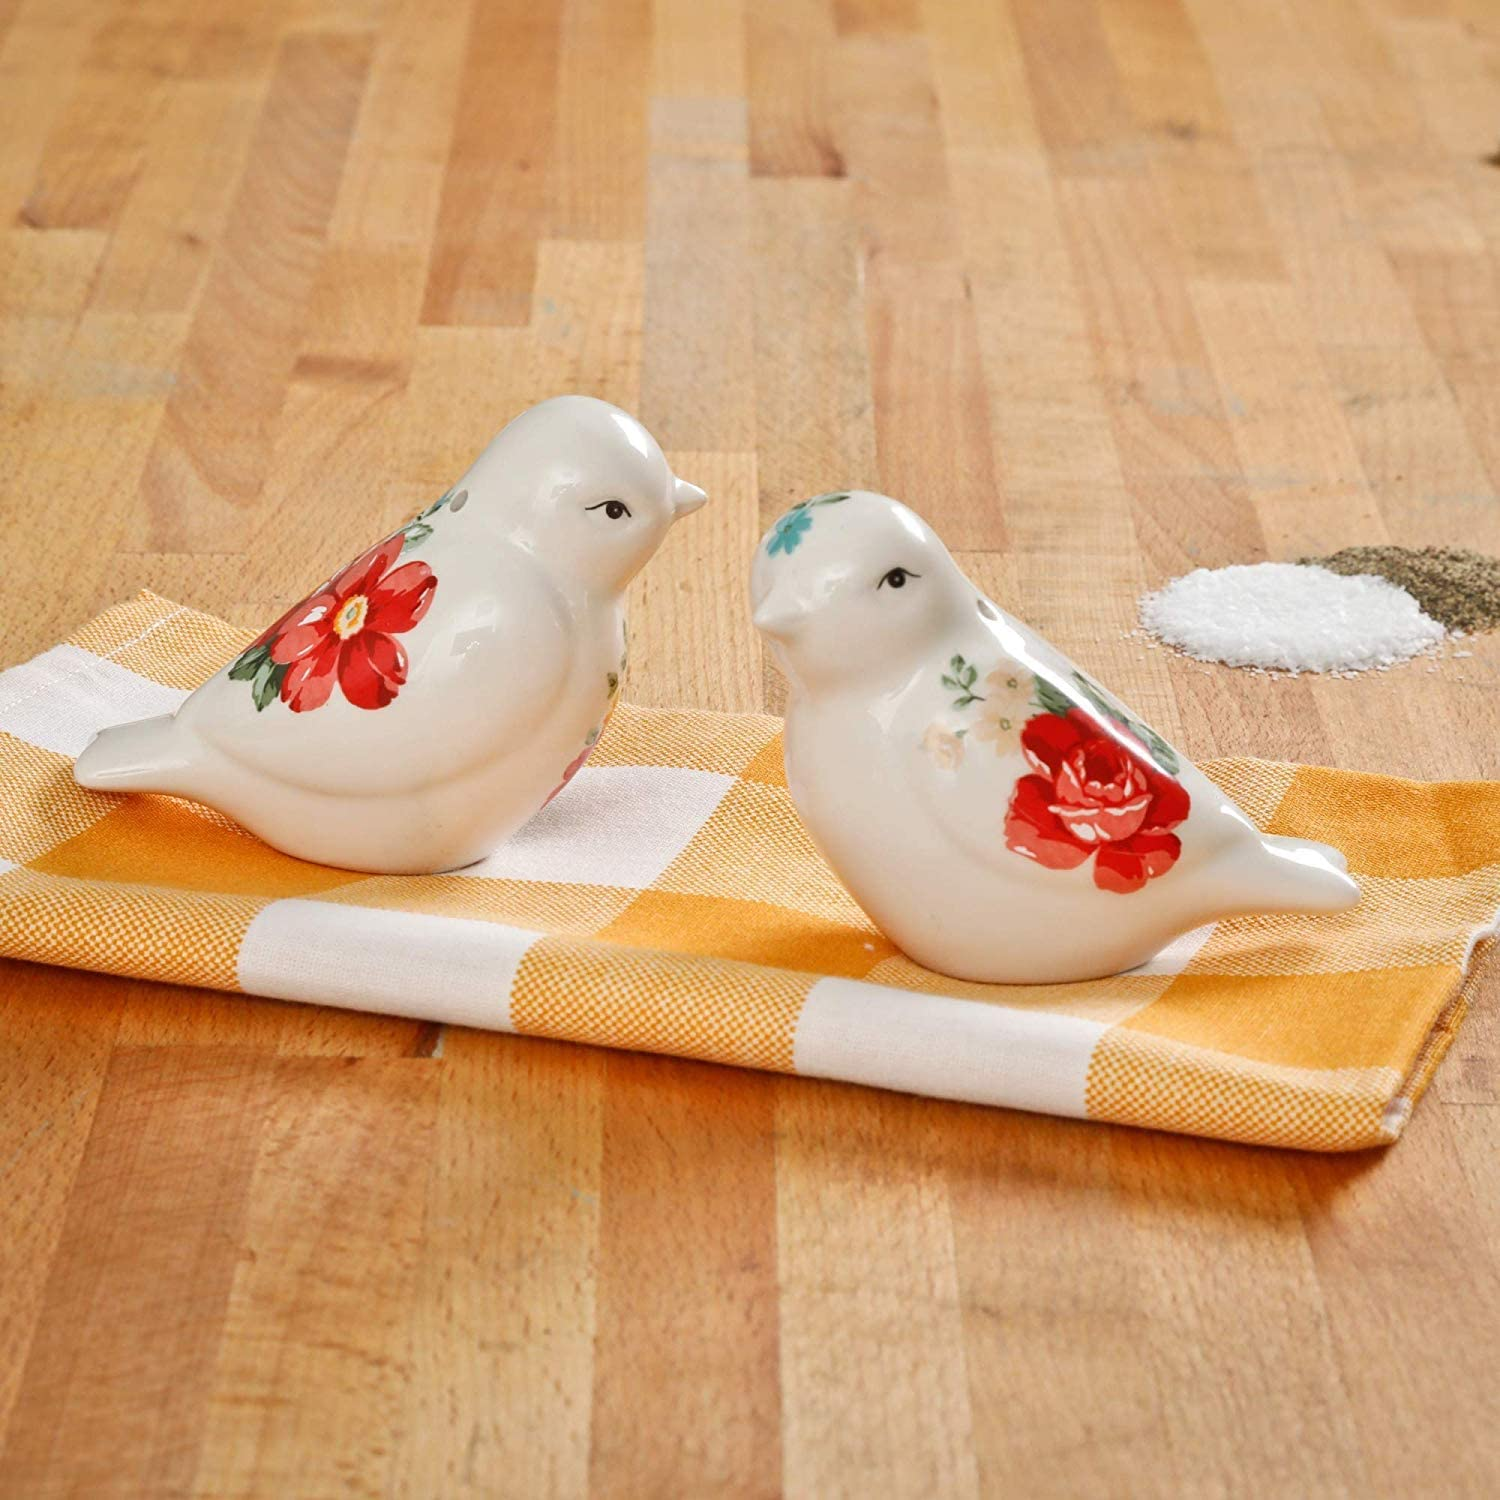 The Pioneer Woman Salt and Pepper shaker set